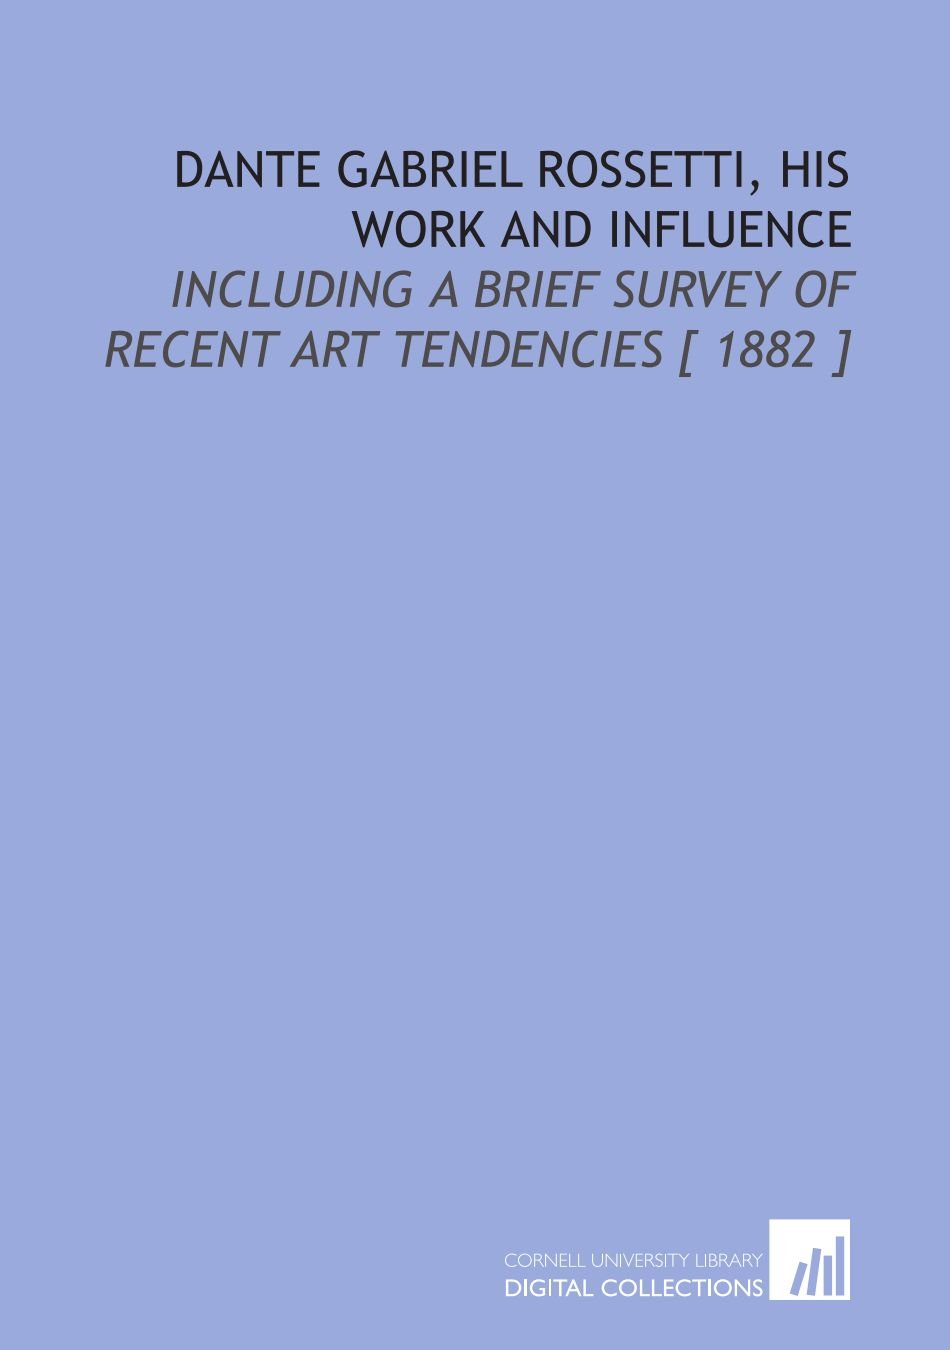 Download Dante Gabriel Rossetti, His Work and Influence: Including a Brief Survey of Recent Art Tendencies [ 1882 ] pdf